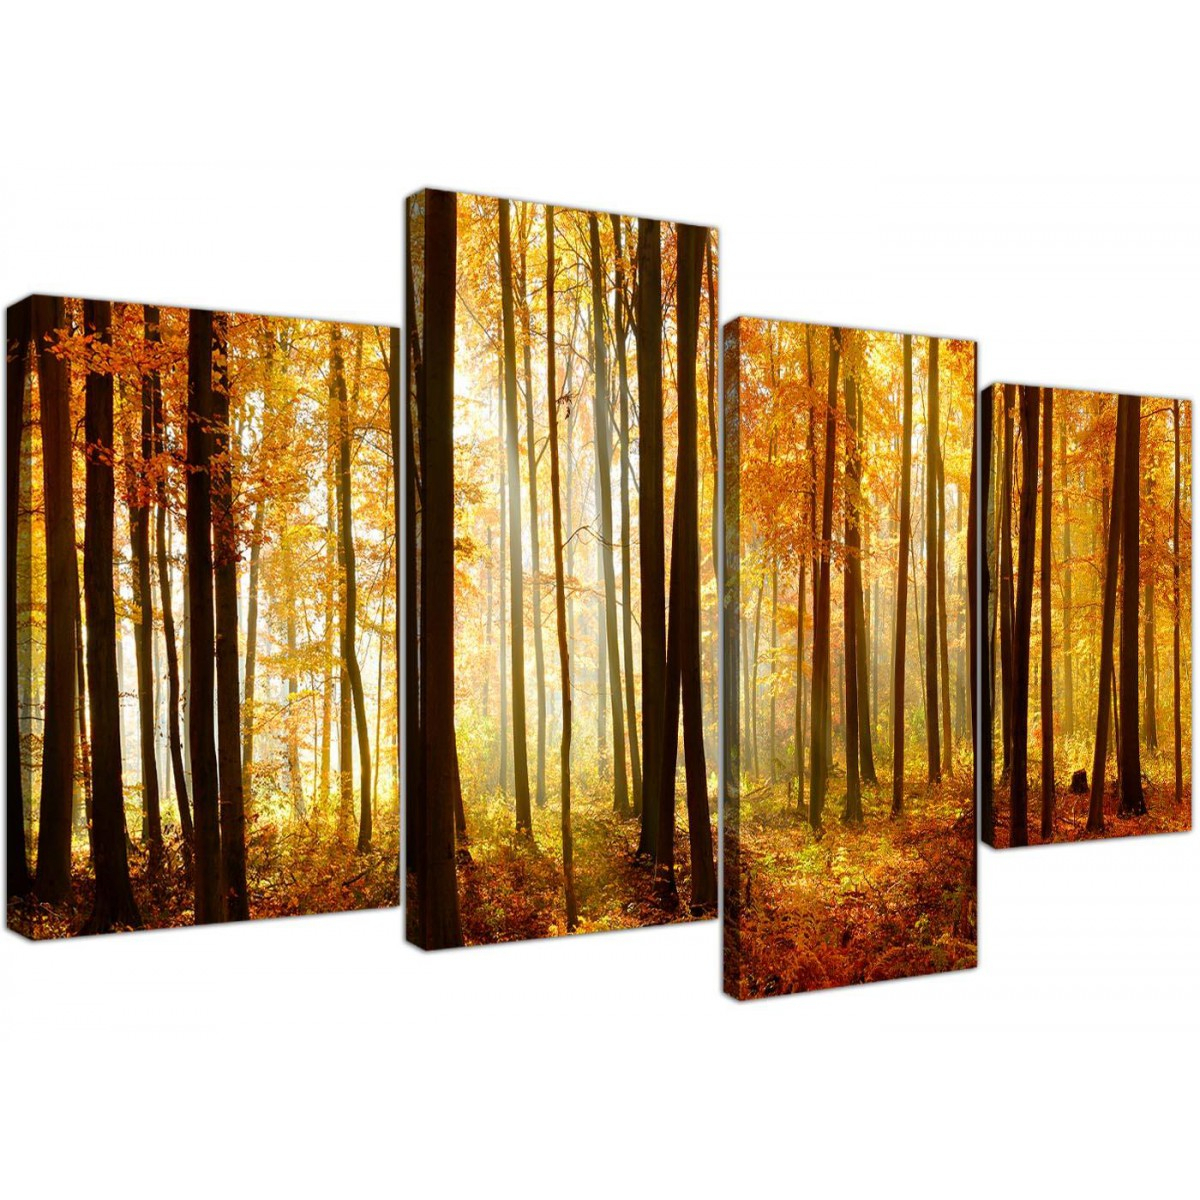 Orange Autumn Forest Scene Woodland Trees Canvas – Split 4 Part – 130Cm – 4243 With Regard To Contemporary Forest Metal Wall Decor (View 22 of 30)